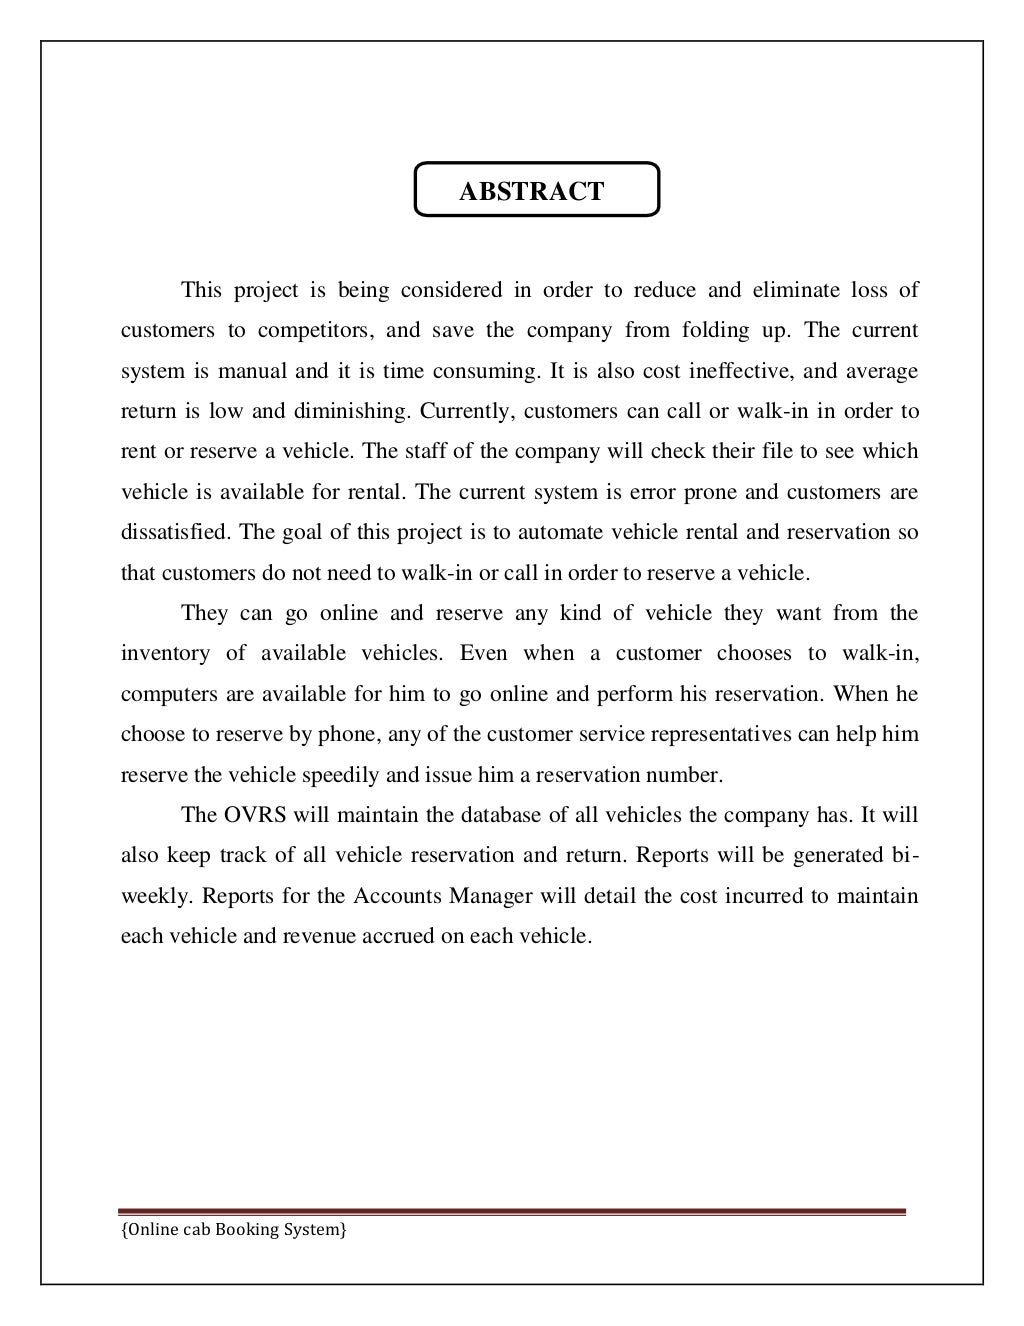 Online Cab Booking System Final Report page 5